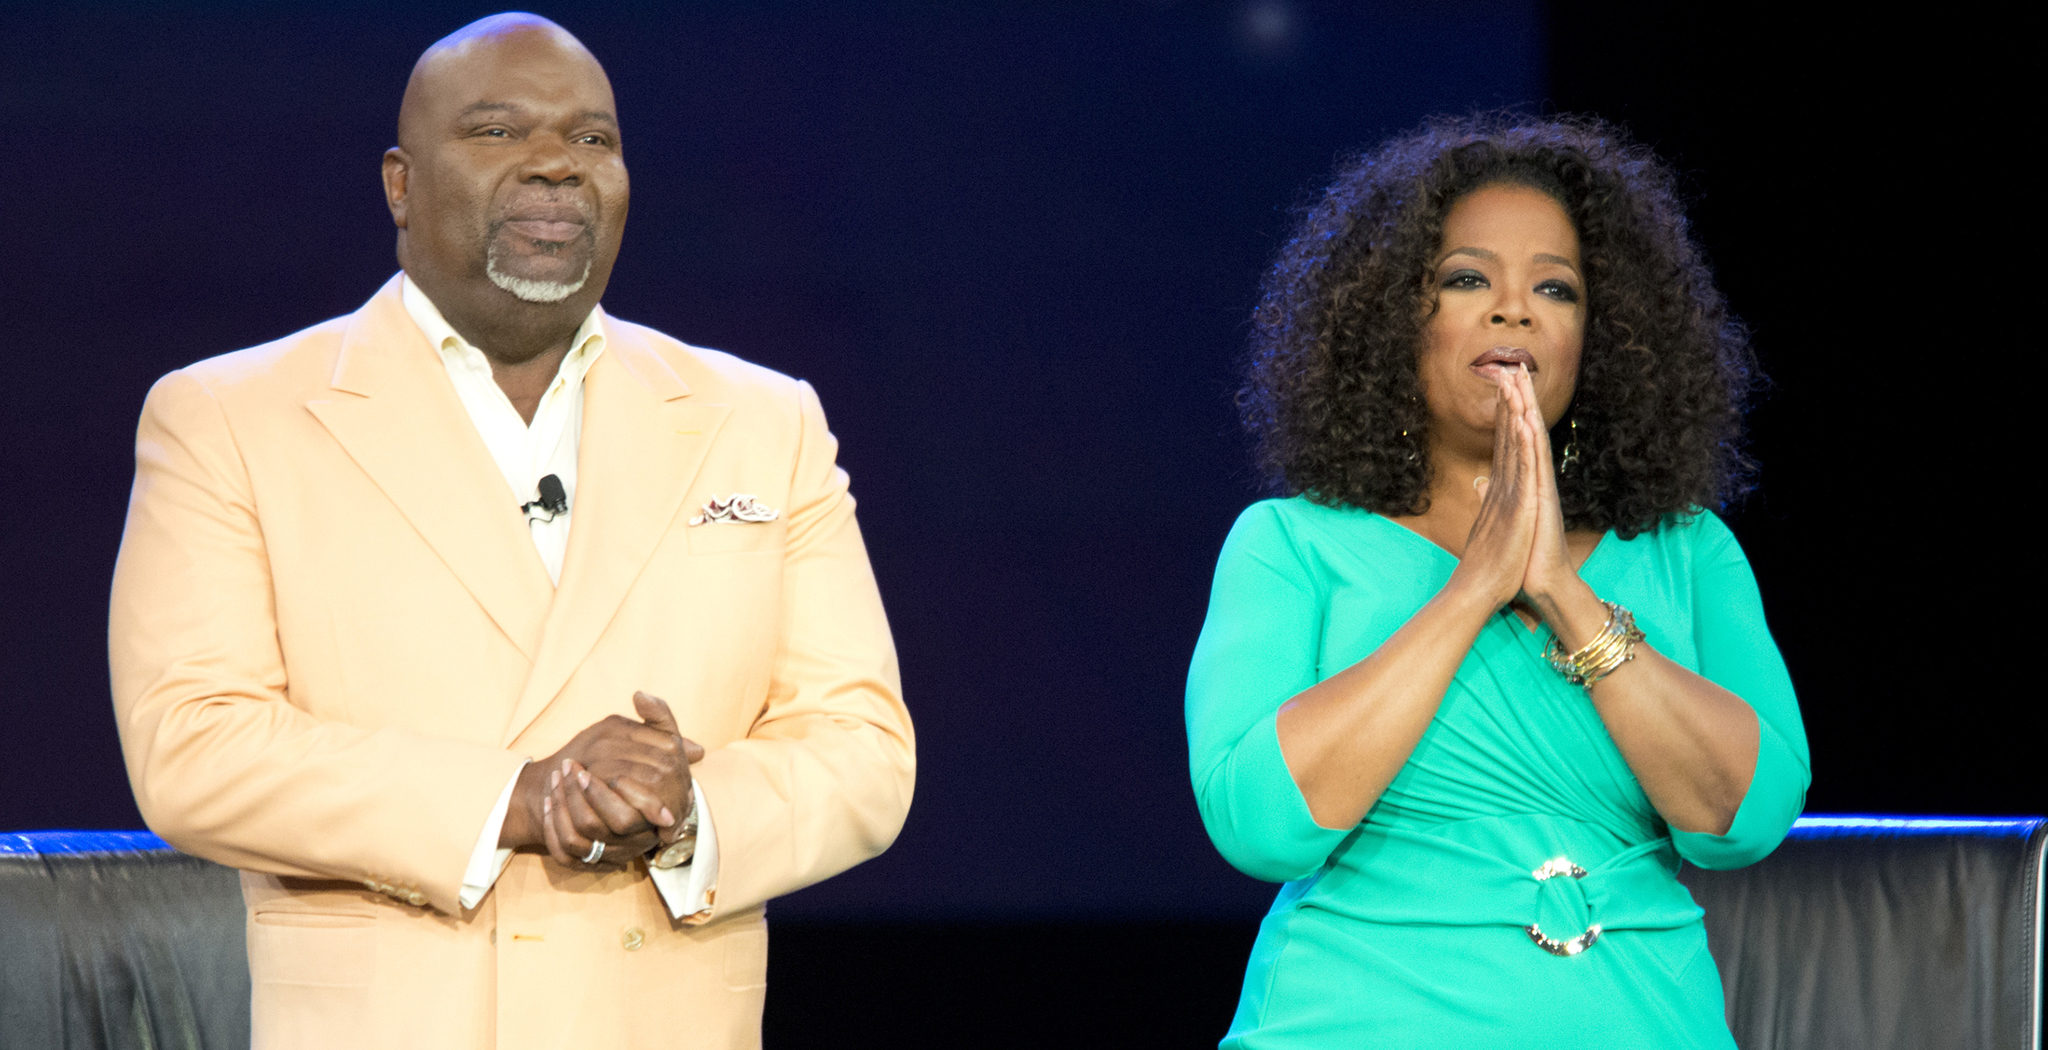 Bishop T.D. Jakes and Oprah Winfrey (Cooper Neill/Getty Images)